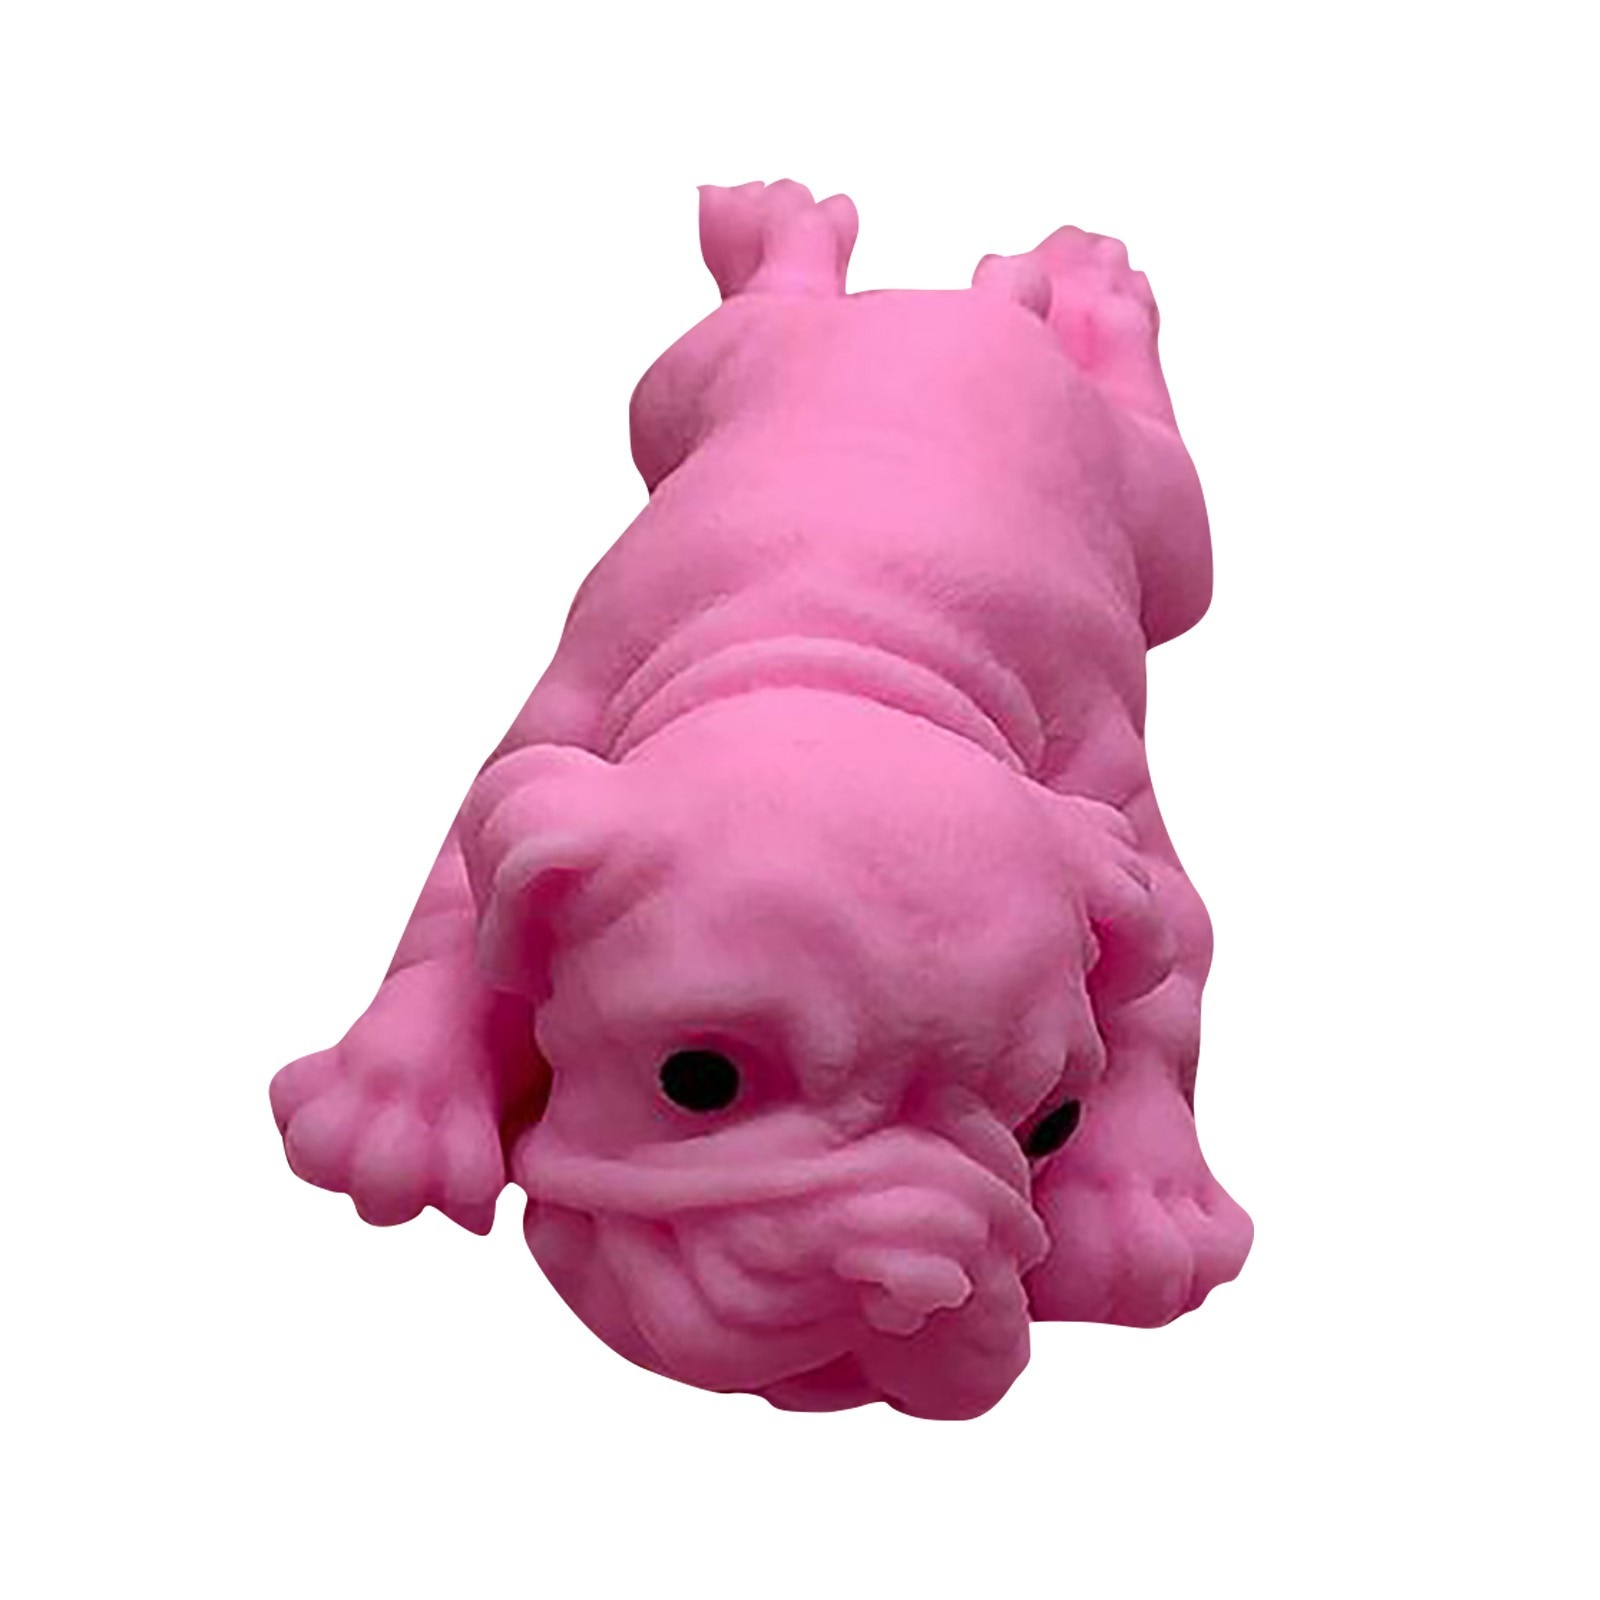 Squishy Dogs Anime Fidget Toys Puzzle Creative Simulation Decompression Toy Anti-stress Party Holiday Gifts For Men And Kids Toy enlarge